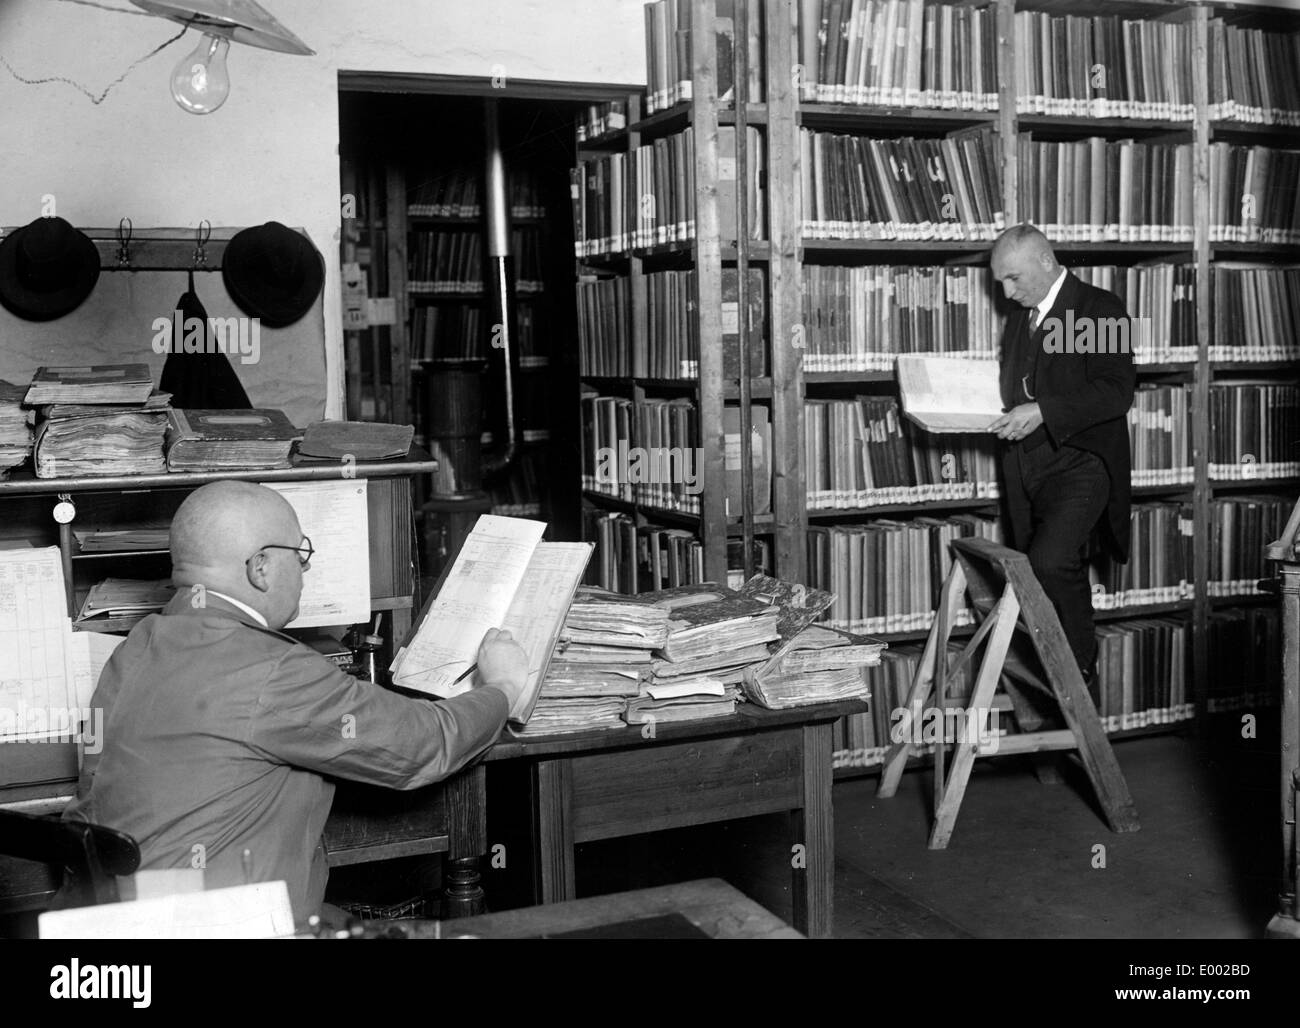 Military records archive in Berlin during the First World War - Stock Image